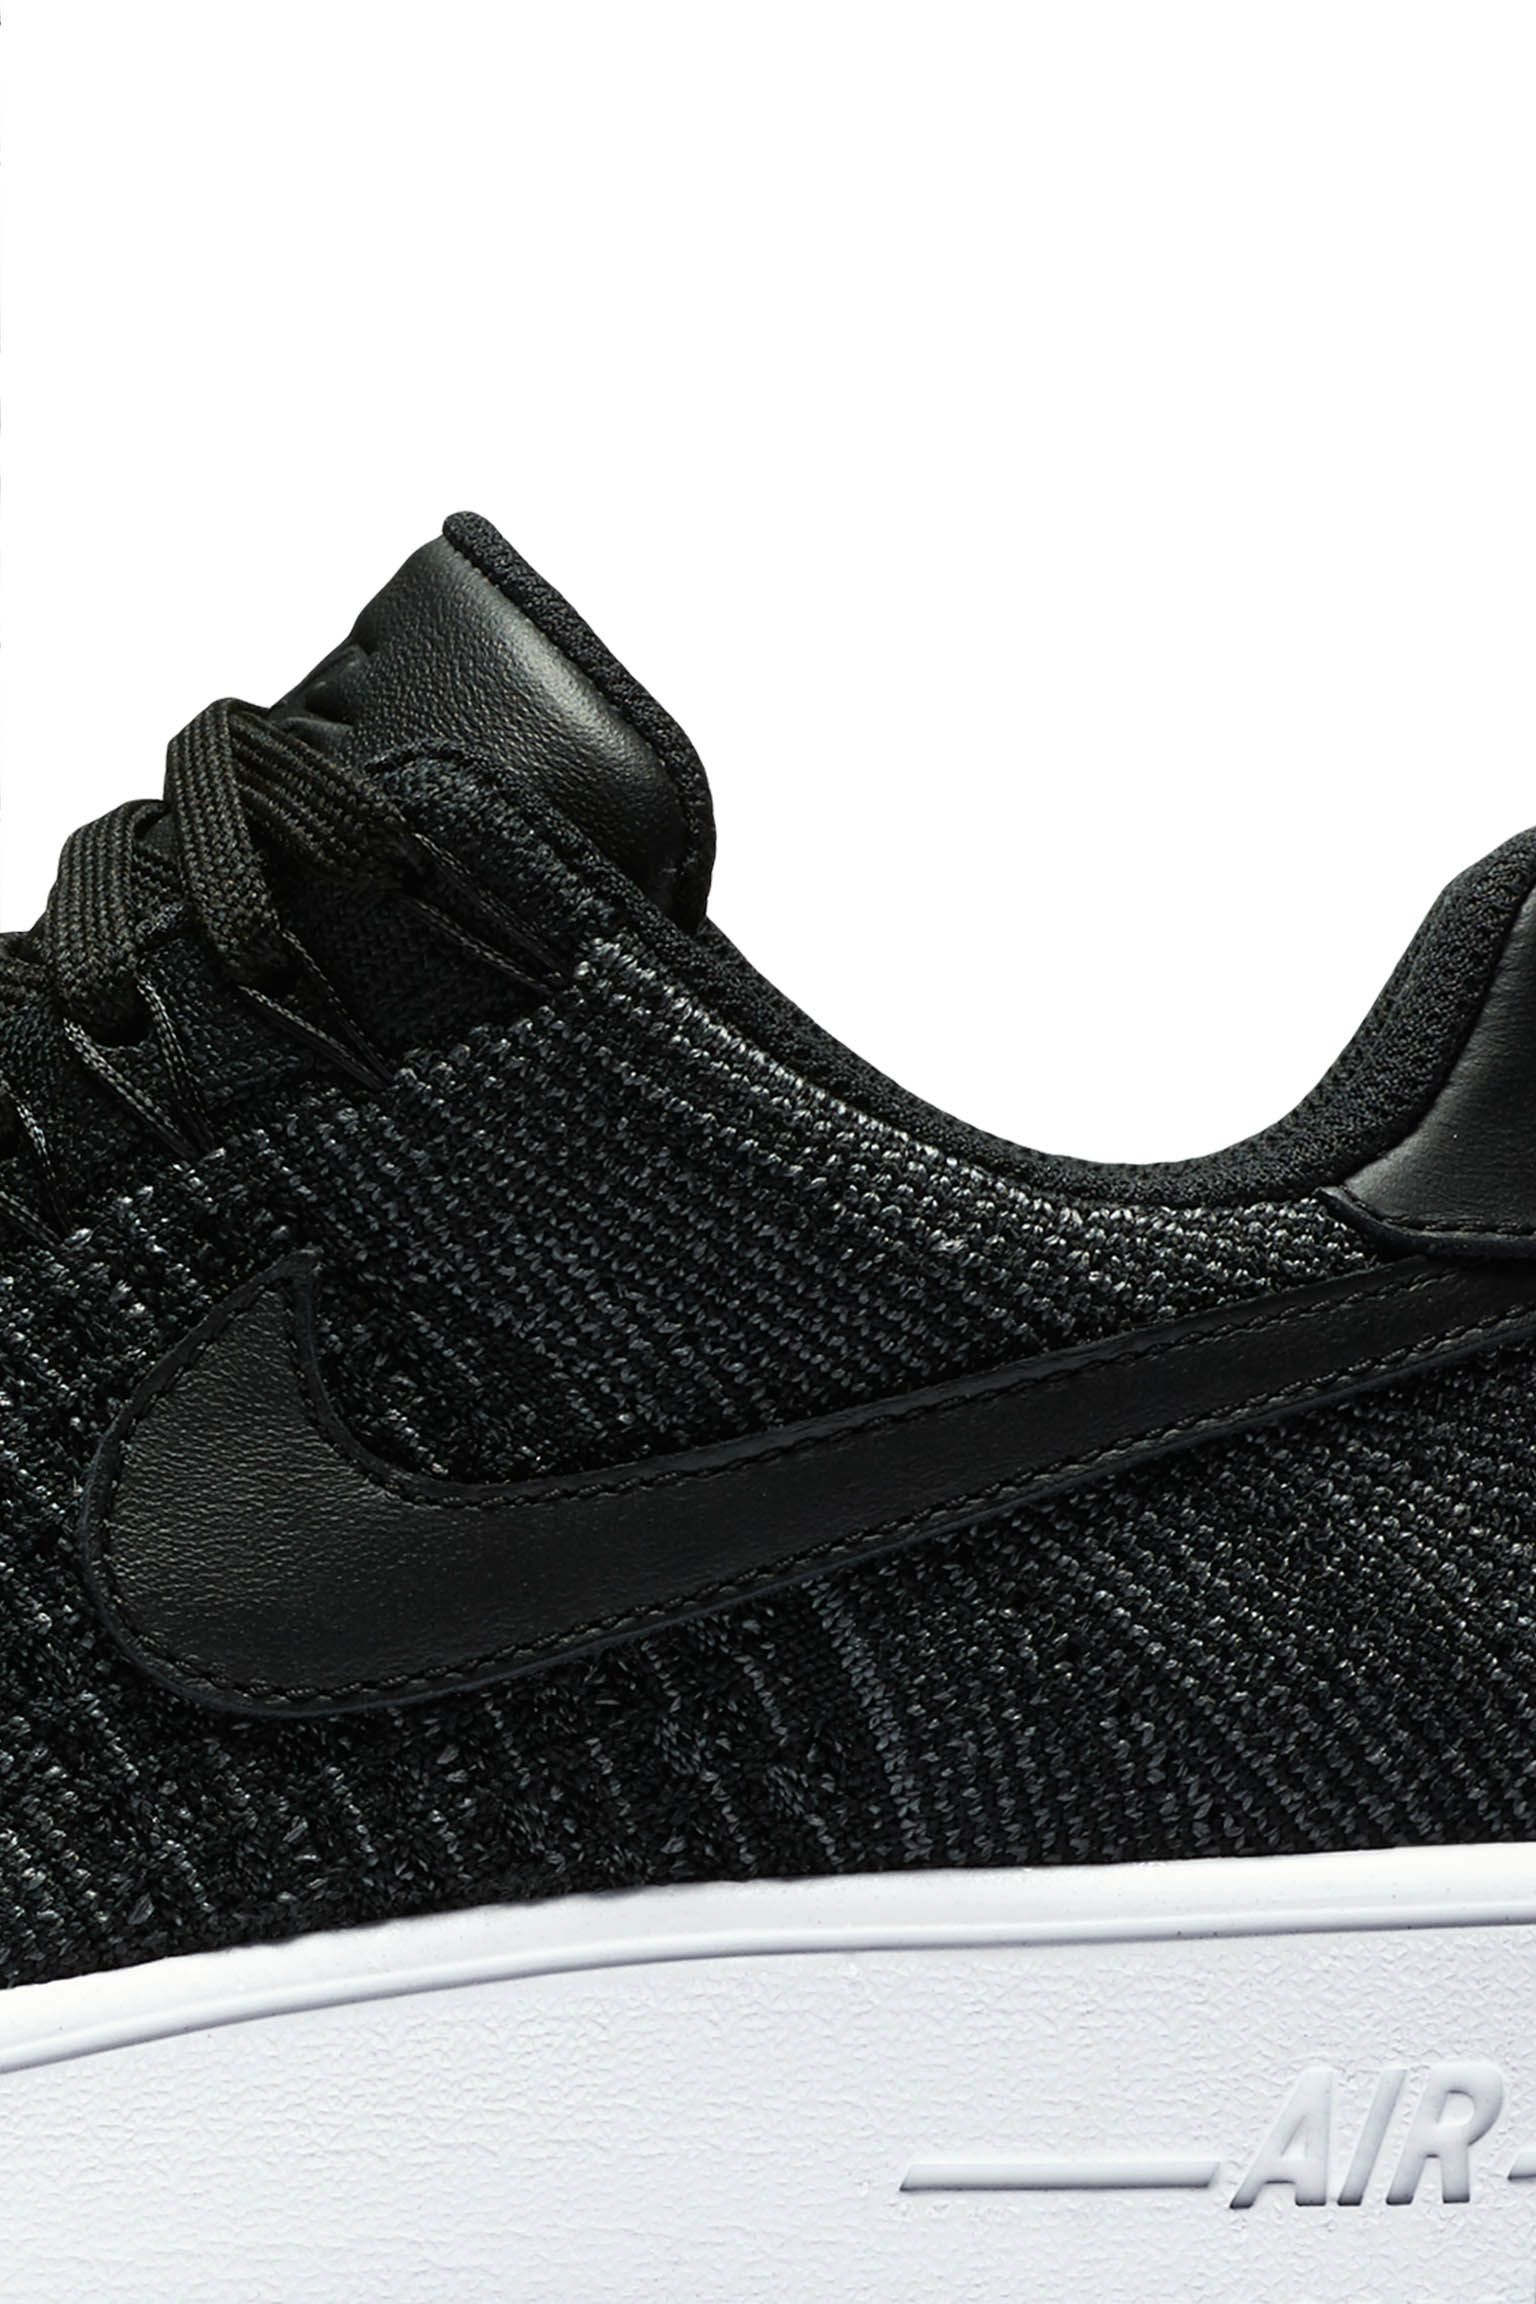 Women's Nike Air Force 1 Ultra Flyknit Low 'Black' Release Date